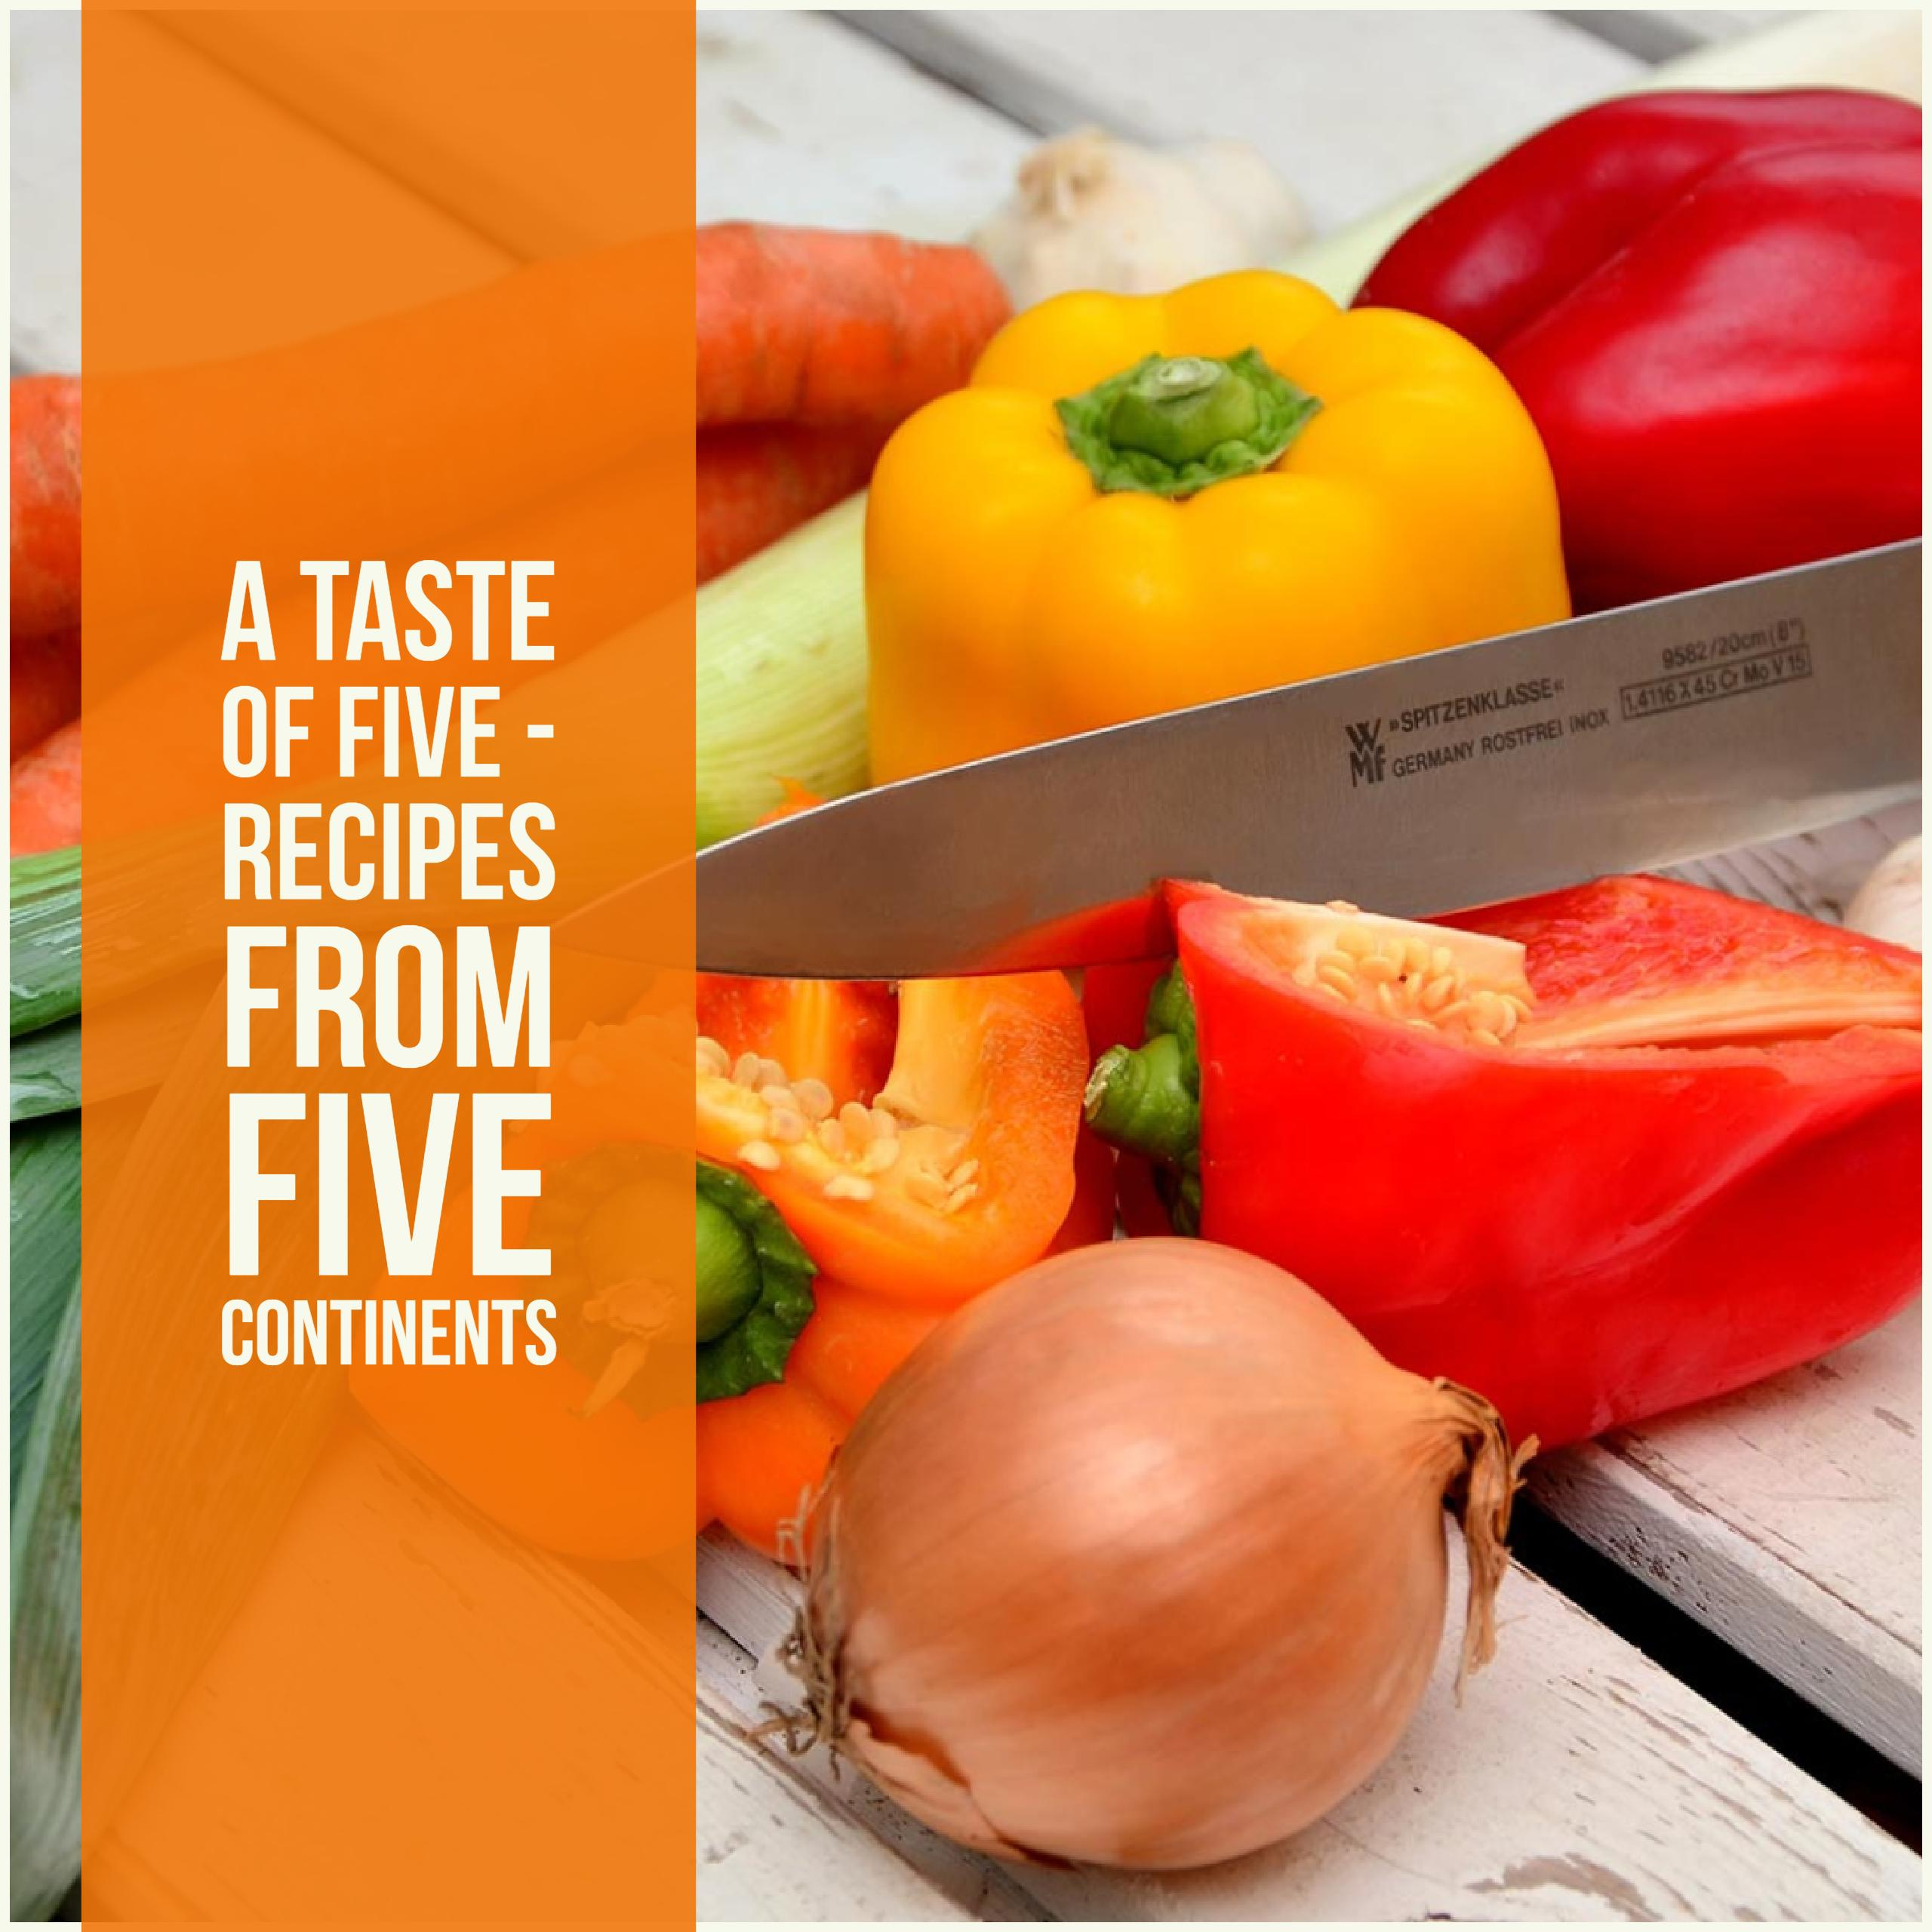 A Taste Of Five – Recipes From Five Continents